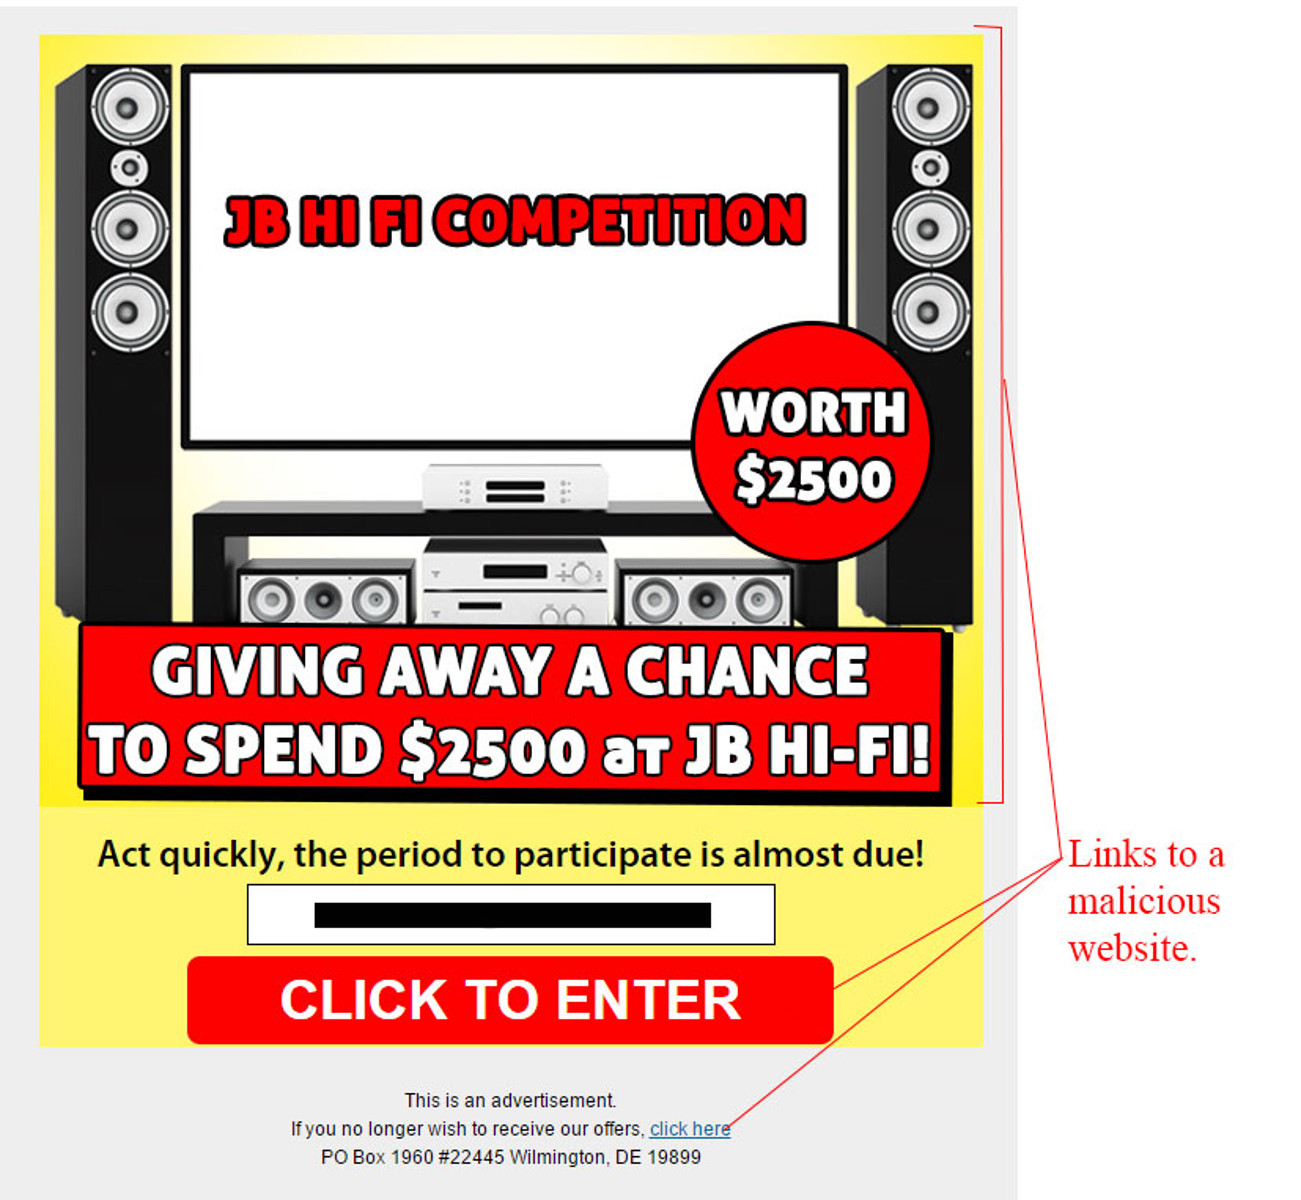 MailShark JB Hi-Fi Competition Gift Card Scam